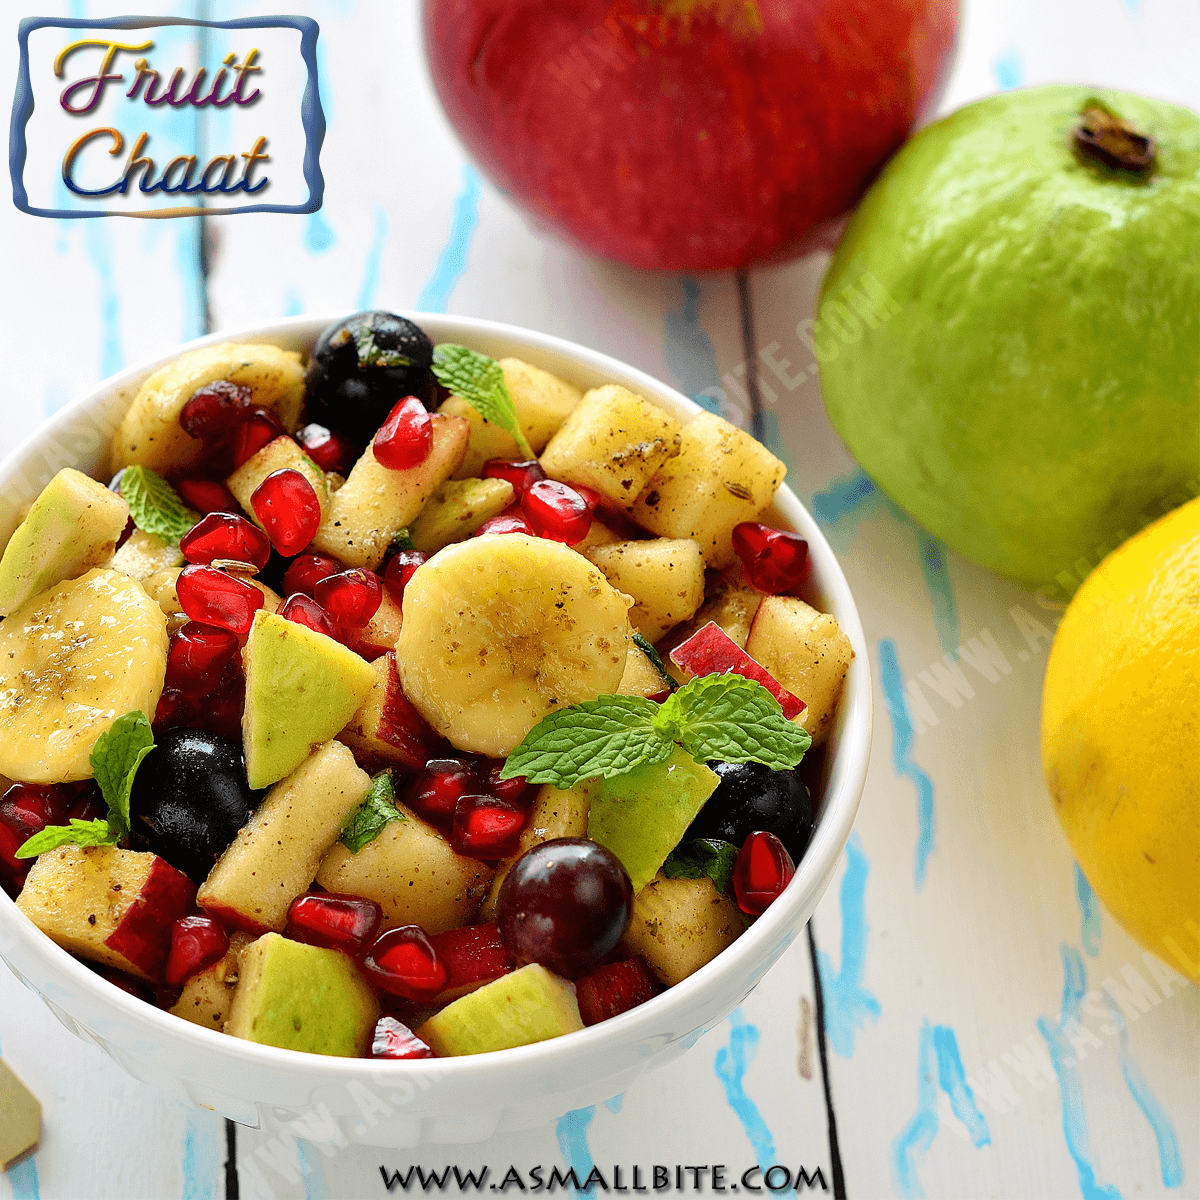 How to make Fruit Chaat